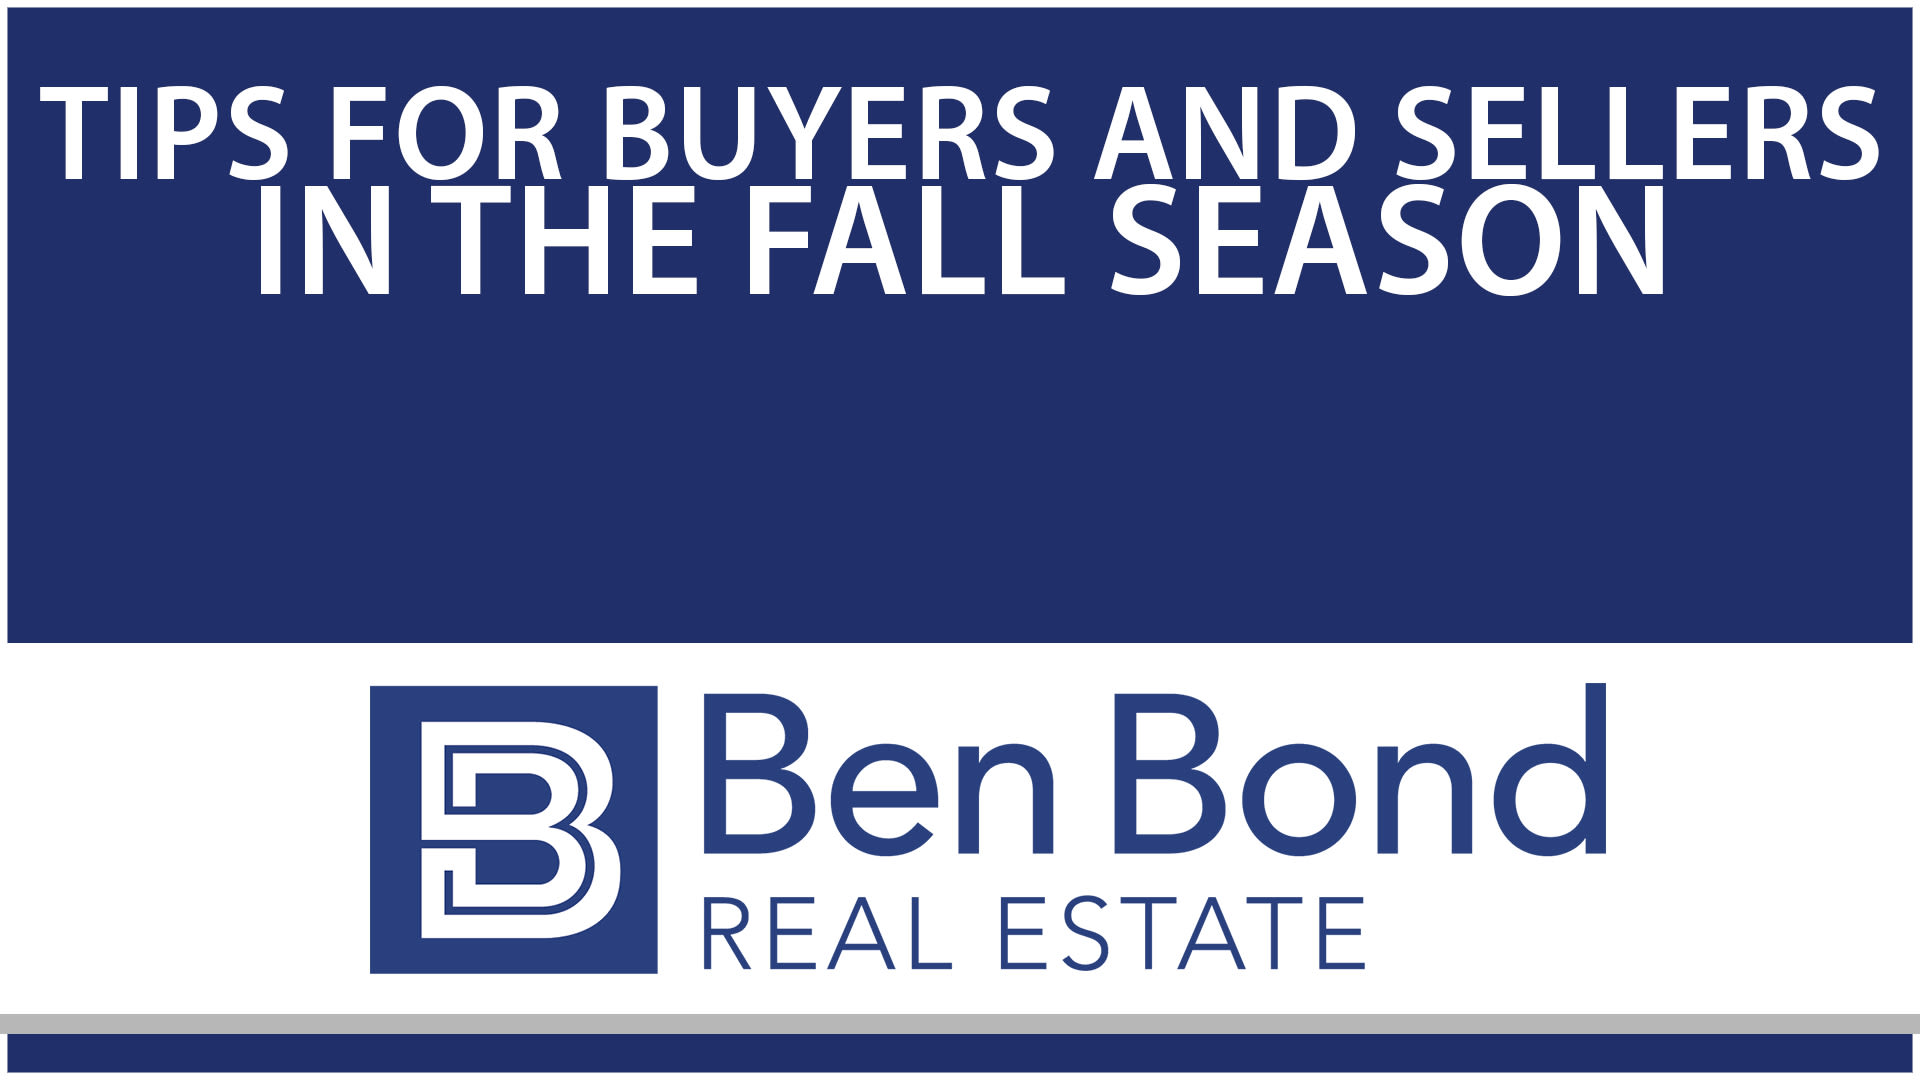 Fall Tips for Both Buyers & Sellers